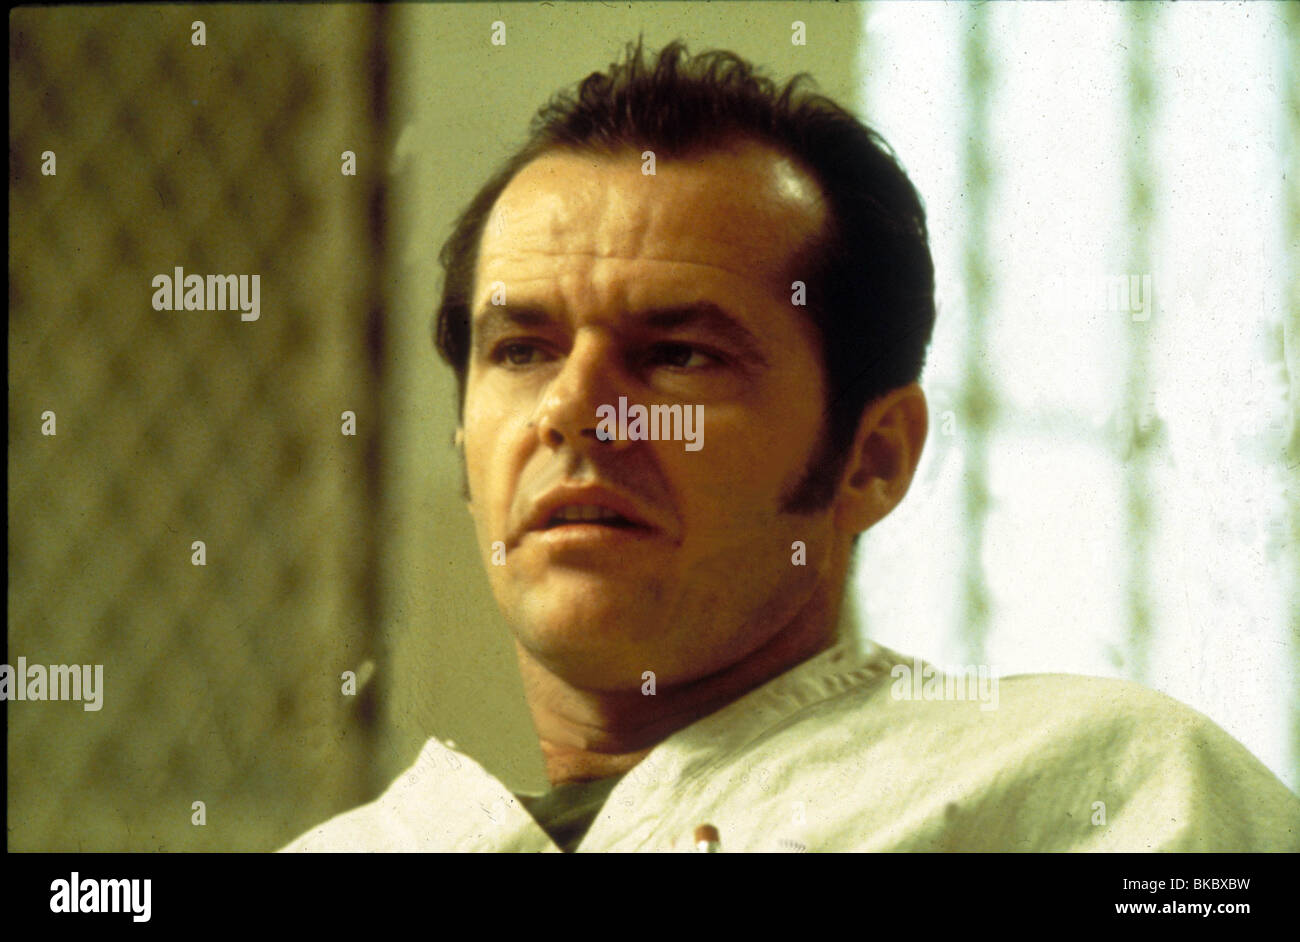 ONE FLEW OVER THE CUCKOO'S NEST(1975) JACK NICHOLSON OFC 002 - Stock Image